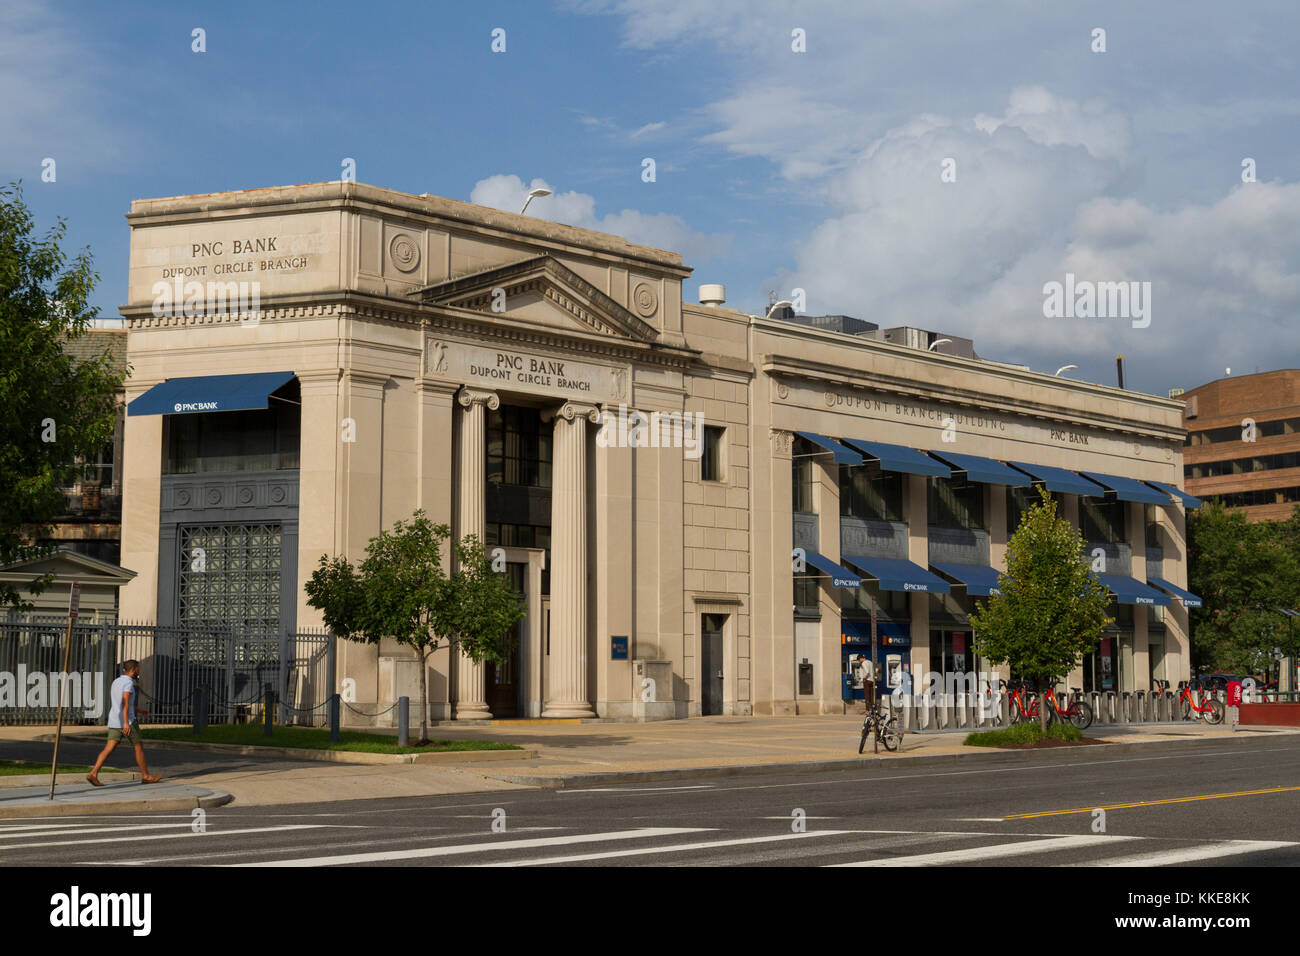 Pnc Bank Stock Photos & Pnc Bank Stock Images - Alamy